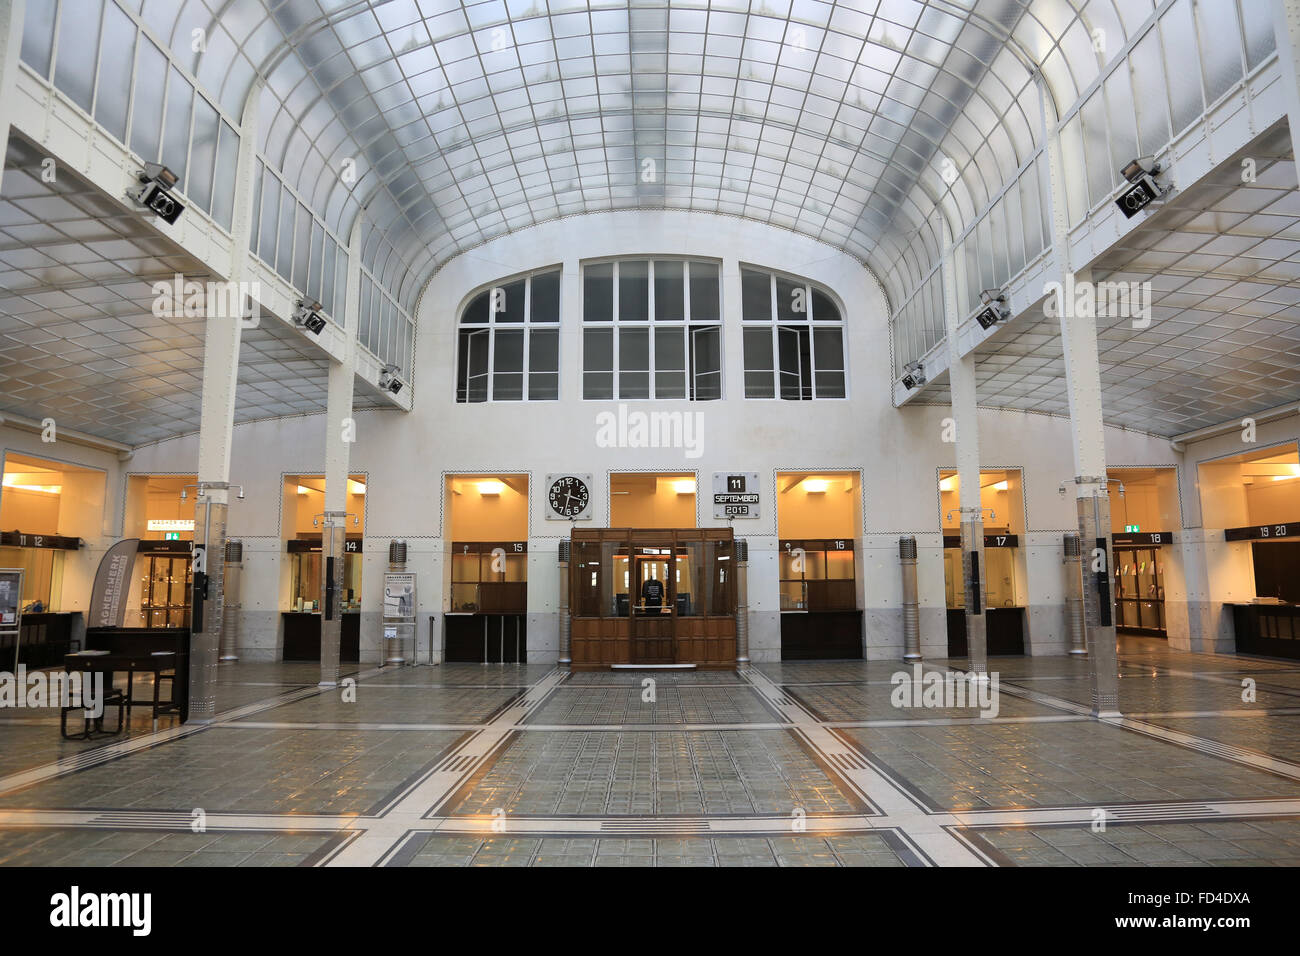 Hall. Postal Office Savings Bank Building by Otto Wagner. - Stock Image